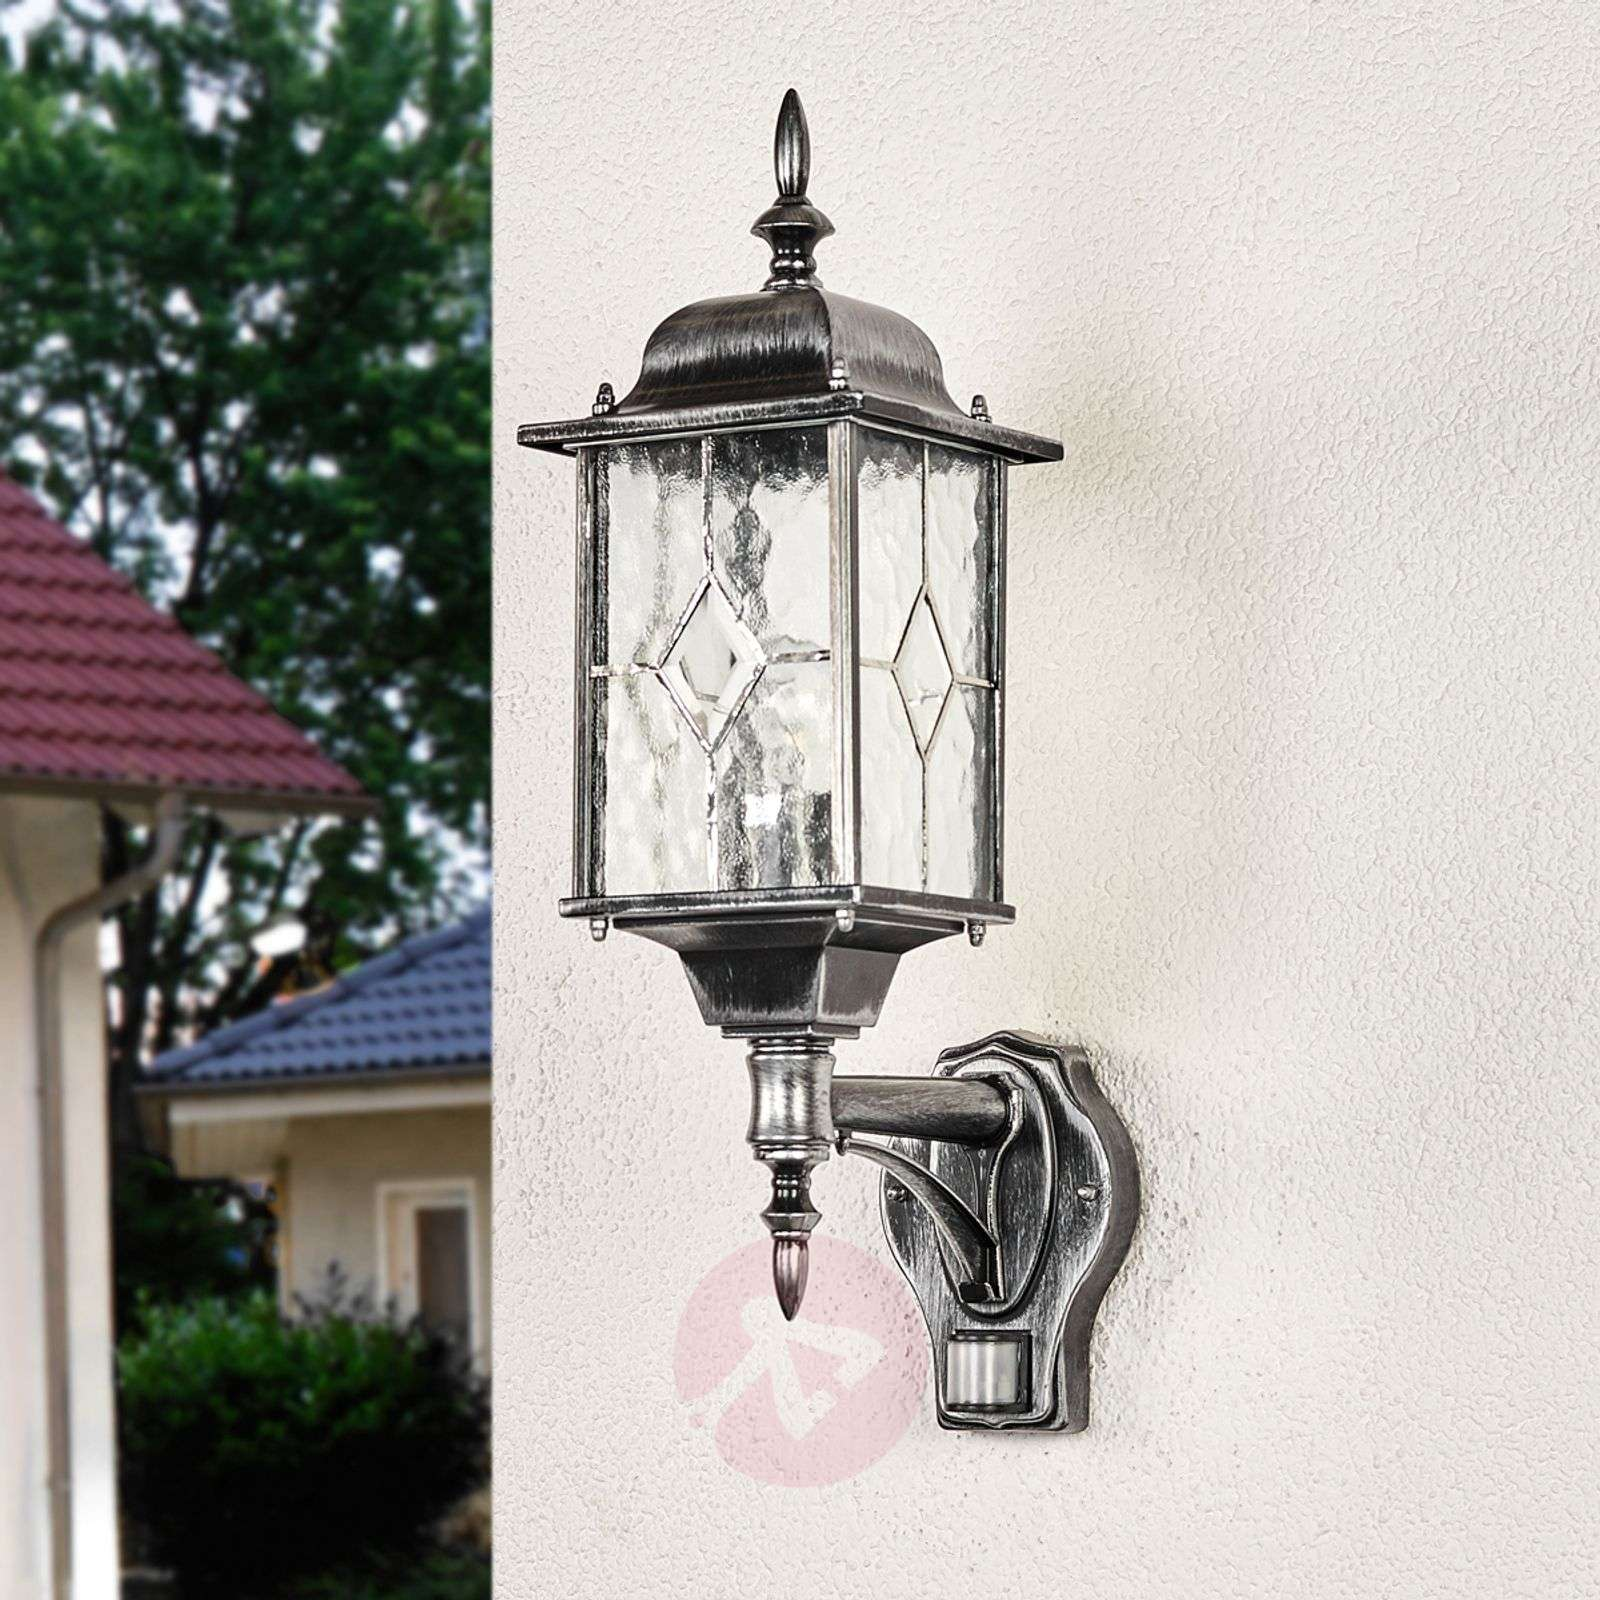 Wexford WX1 outdoor wall light with sensor-3048207-02